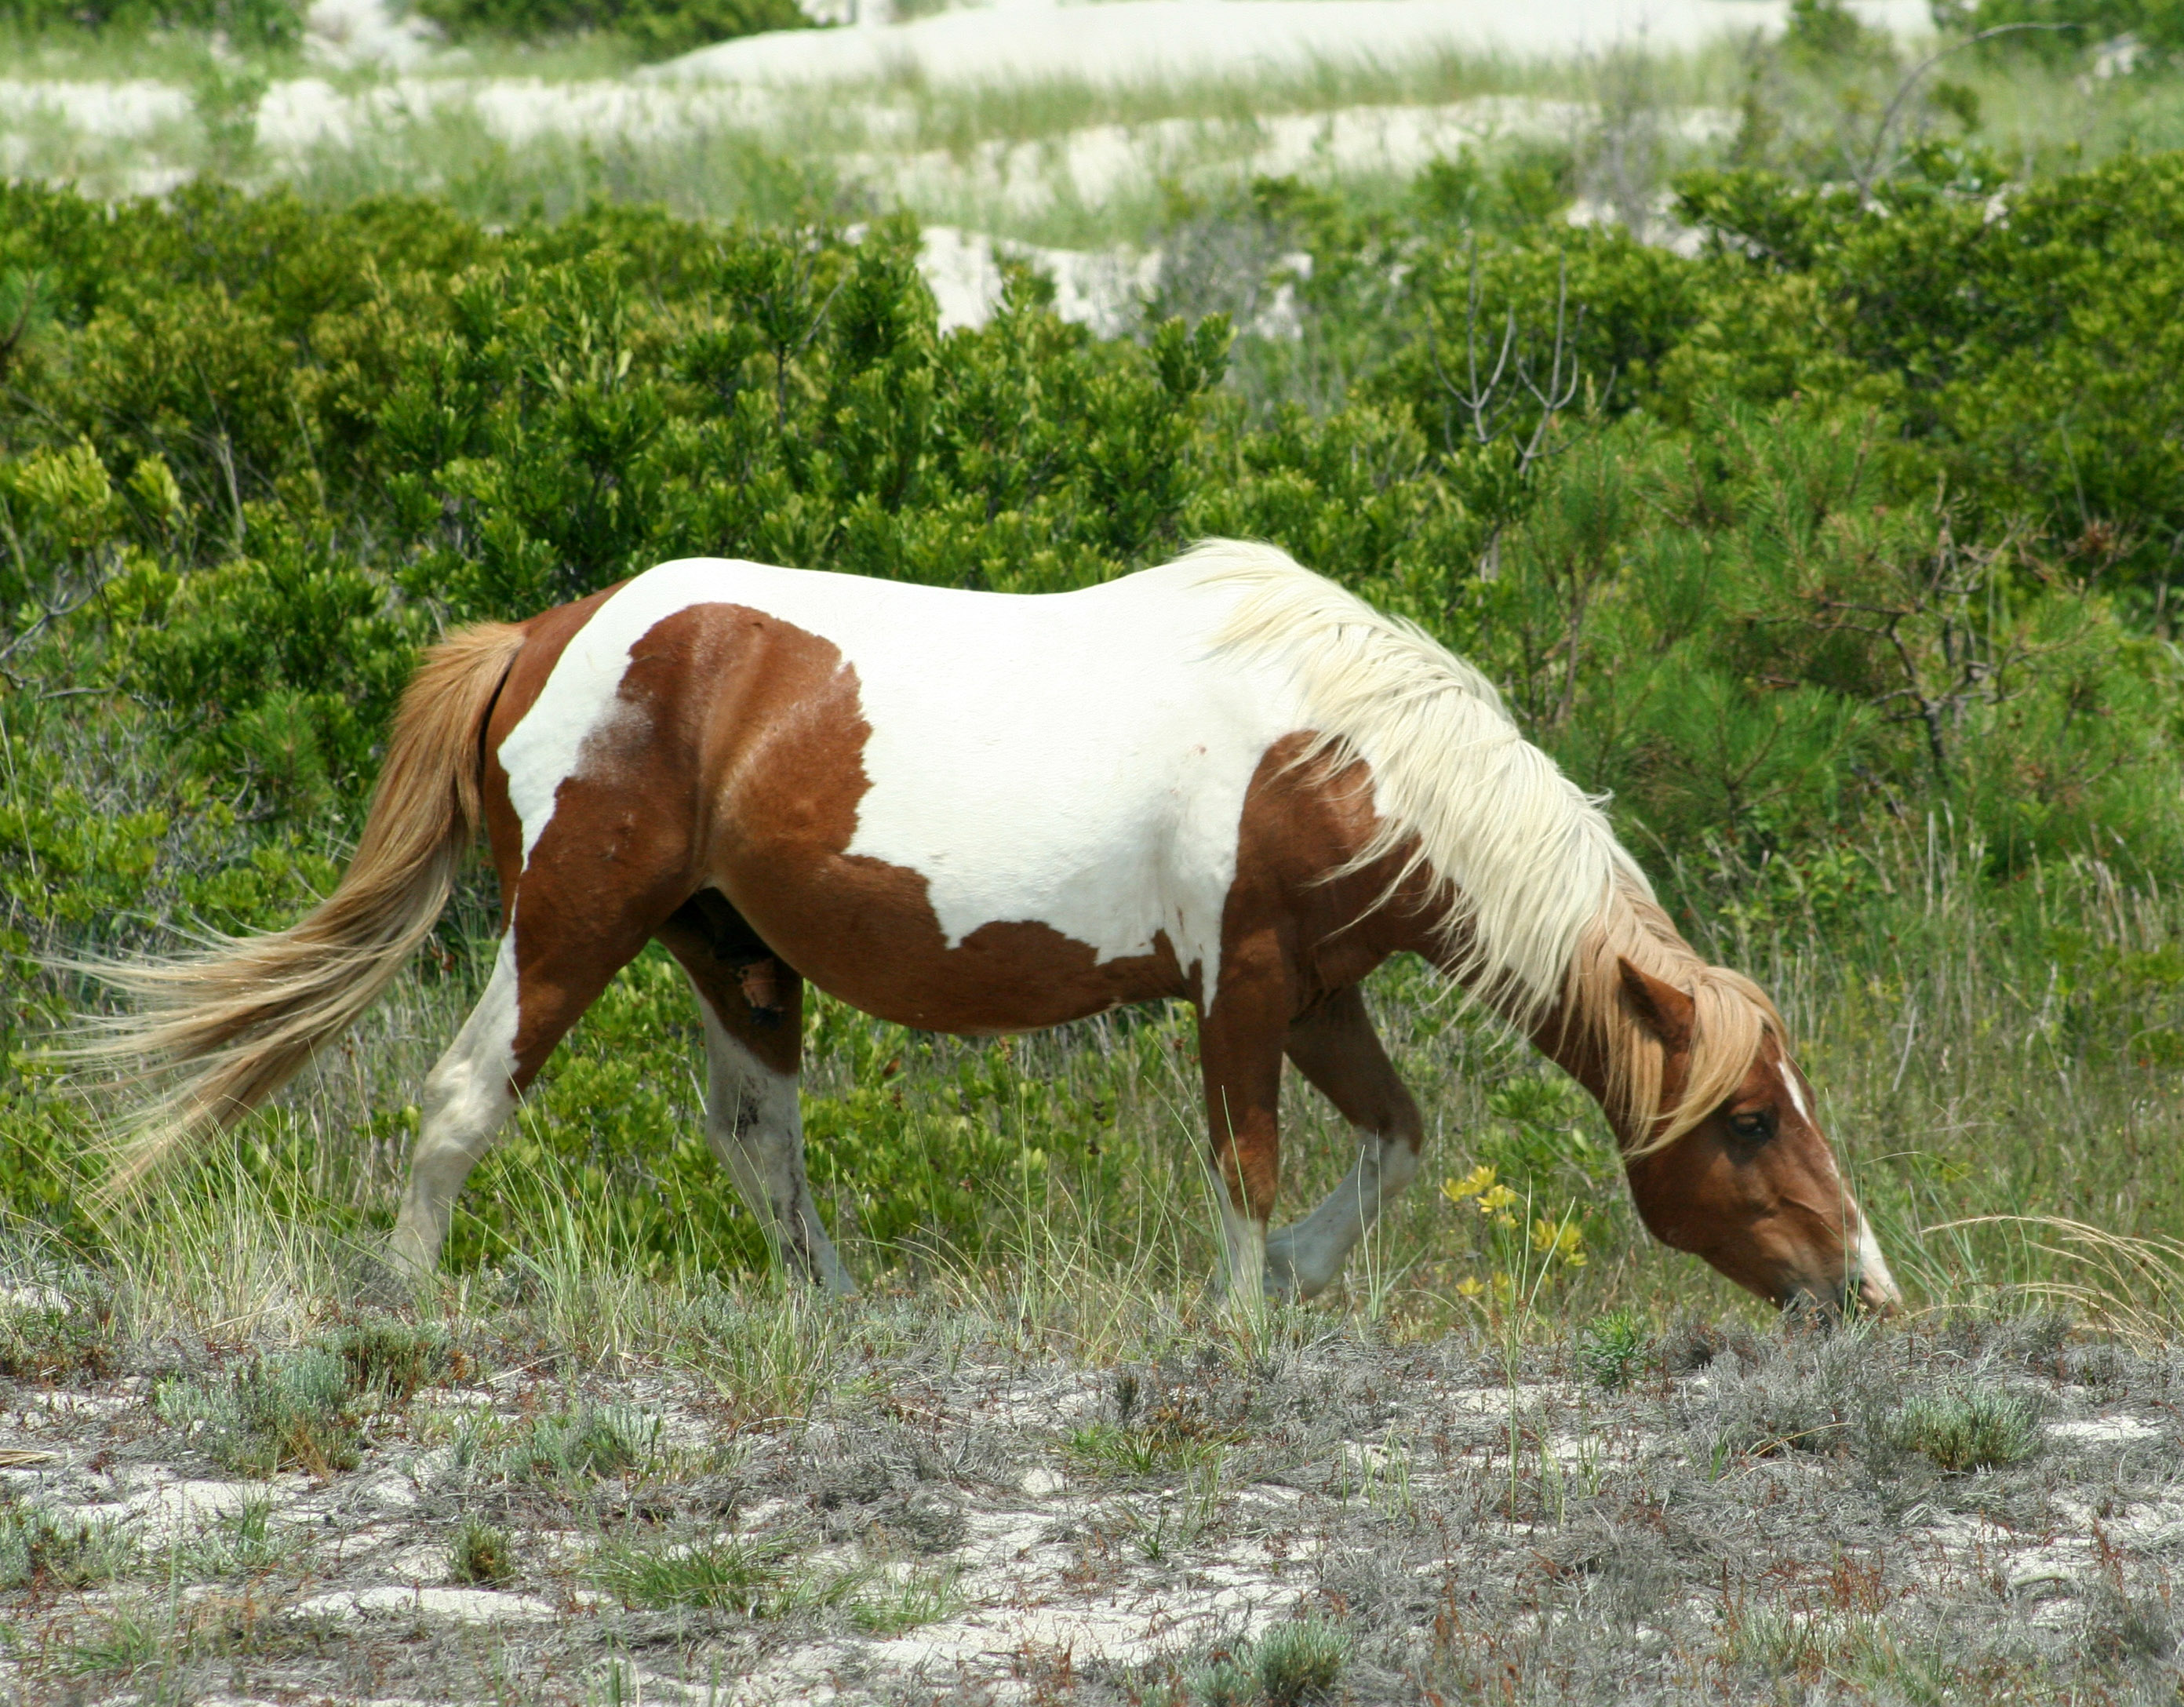 chincoteague island black dating site Assateague island national seashore assateague island is such an impressive natural treasure and serves as the site to both the chincoteague national wildlife refuge and assateague island national seashore.